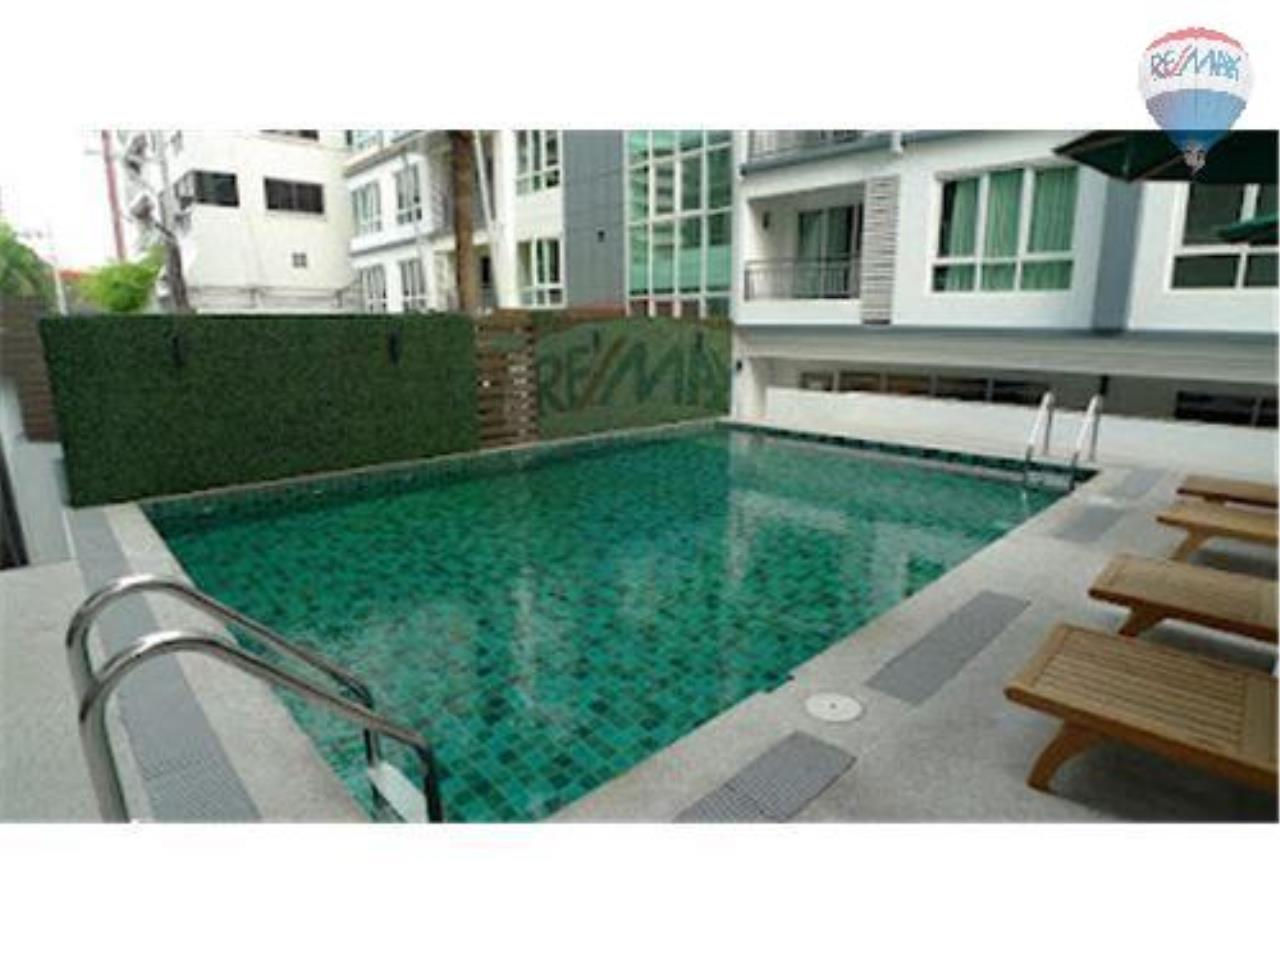 RE/MAX Properties Agency's 2 Bedroom Apartment for rent - VOQUE in Sukhumvit 16 11